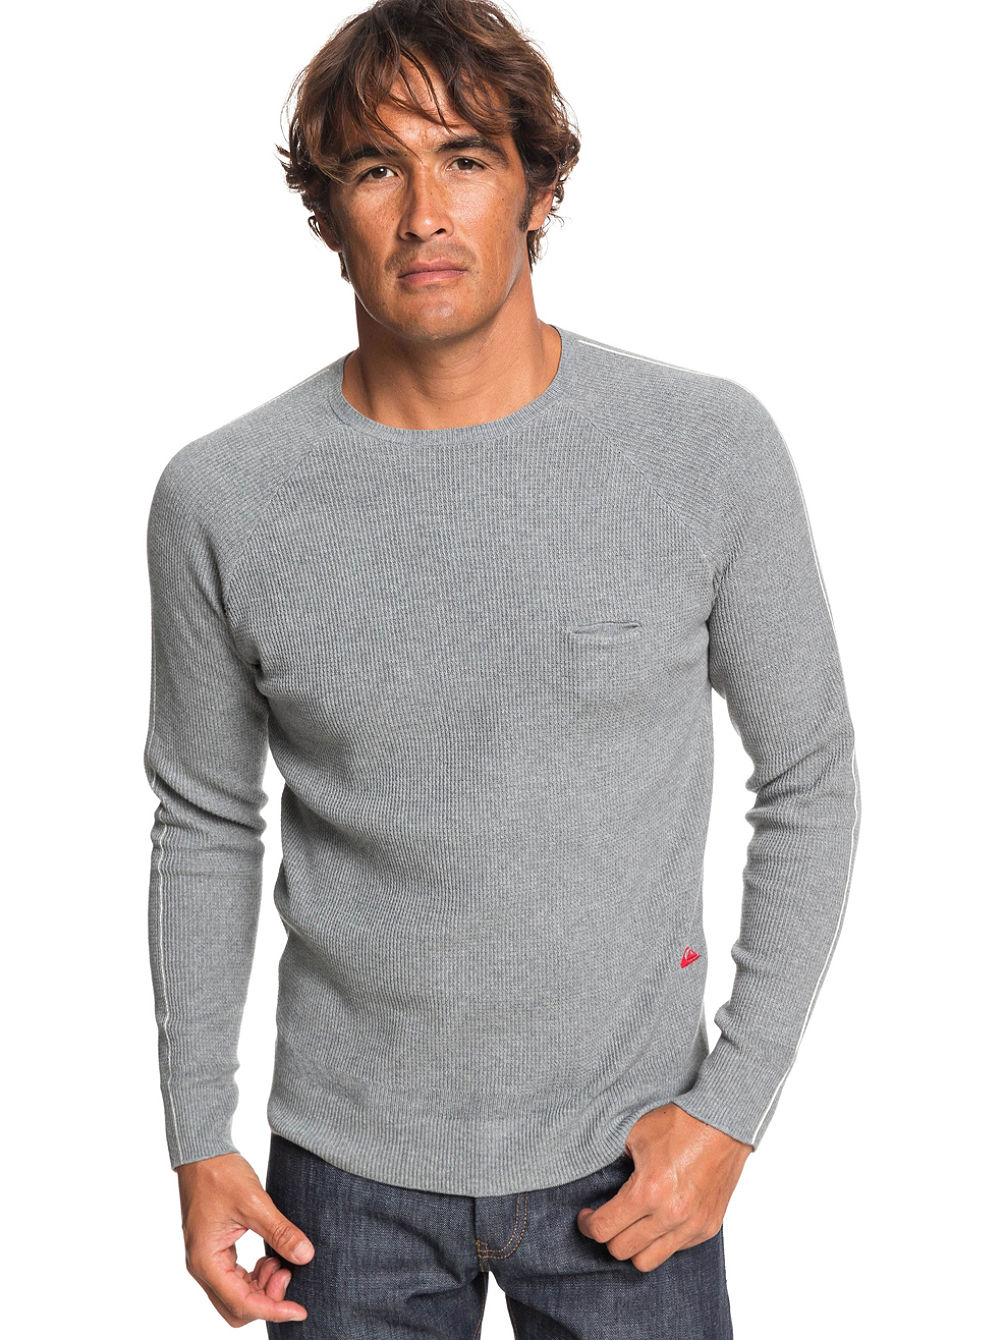 Boudigau Pullover